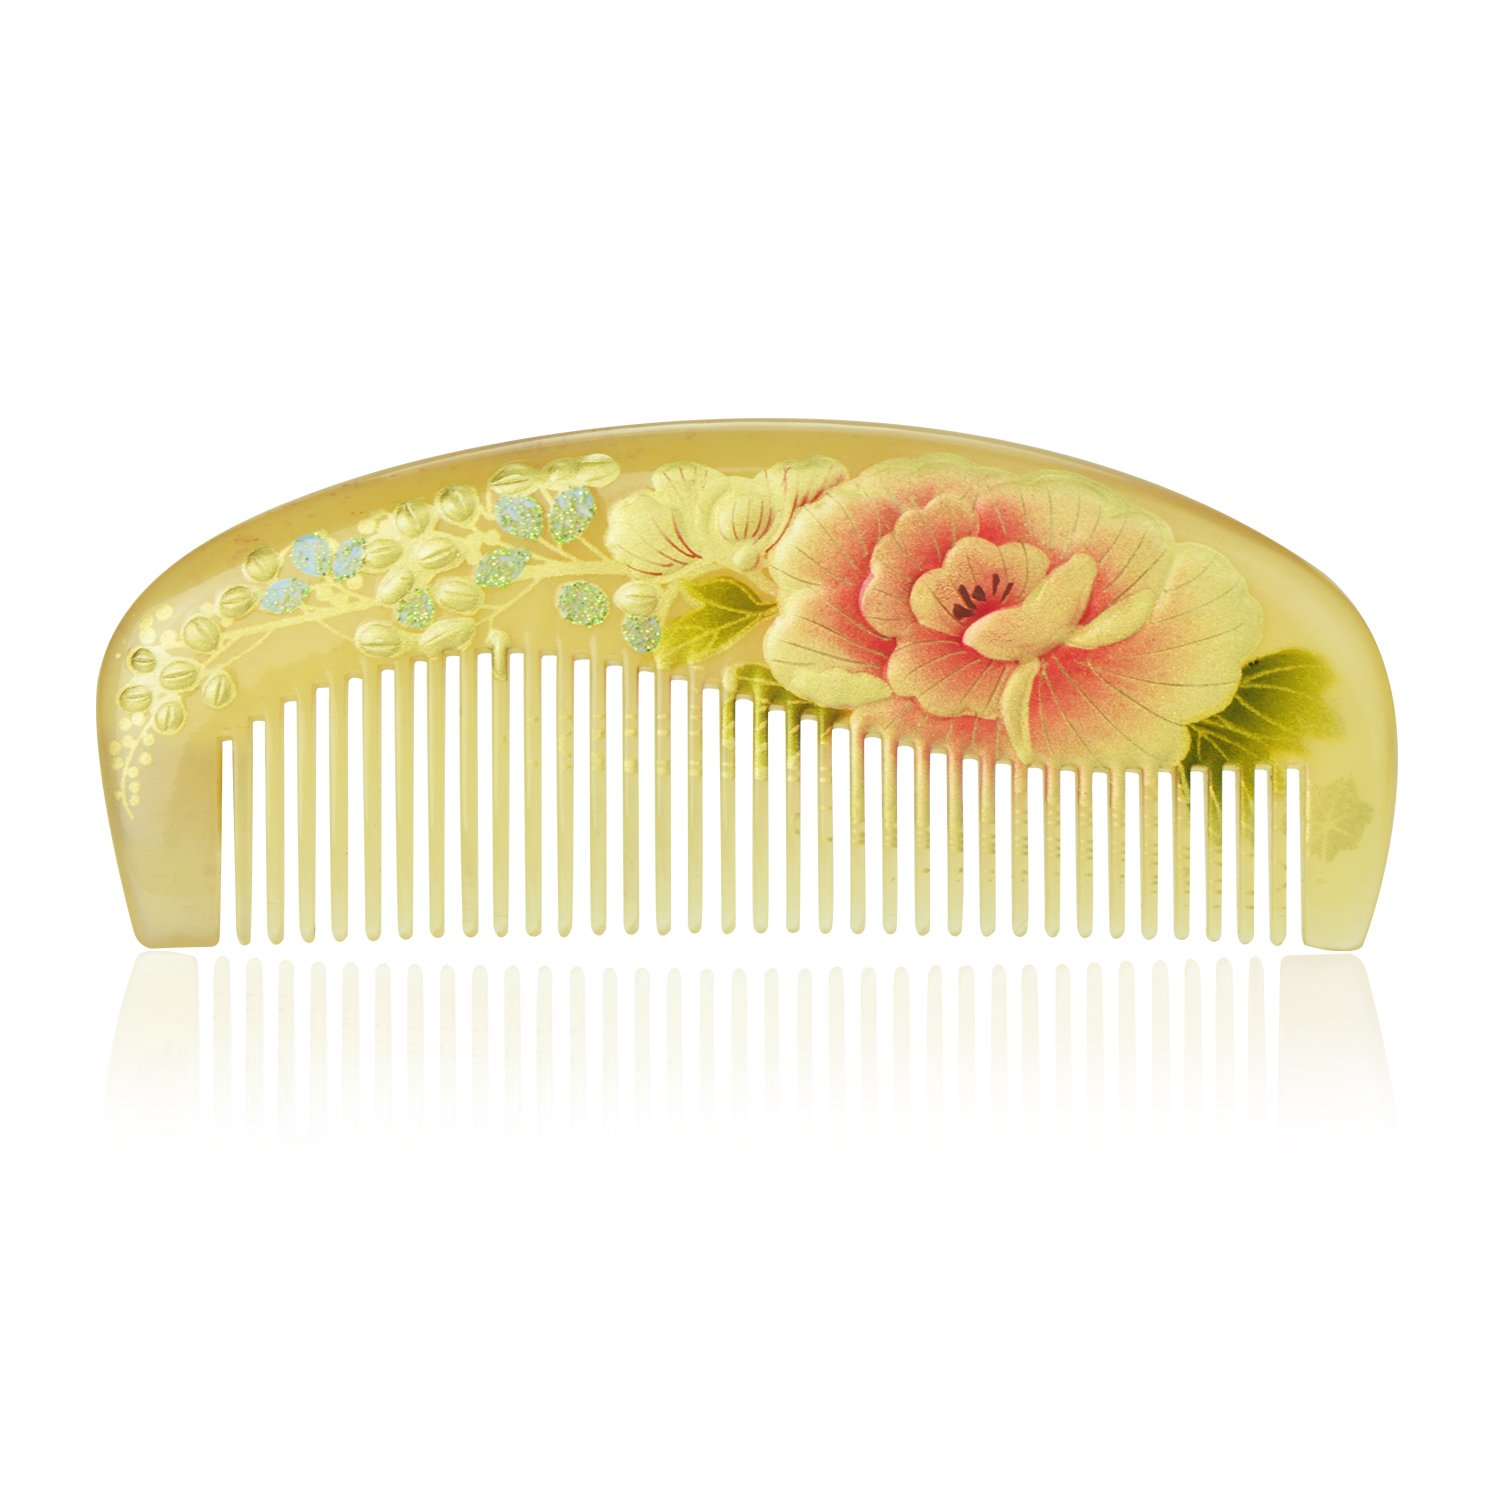 Yumary Traditional Chinese Styling Handmade Hair Comb Quality Natural Cattle Horn Comb 4.7 Inch Without Handle Beard Comb Flower Handmade Lacquer Drawing Gift Packaging (Peony)